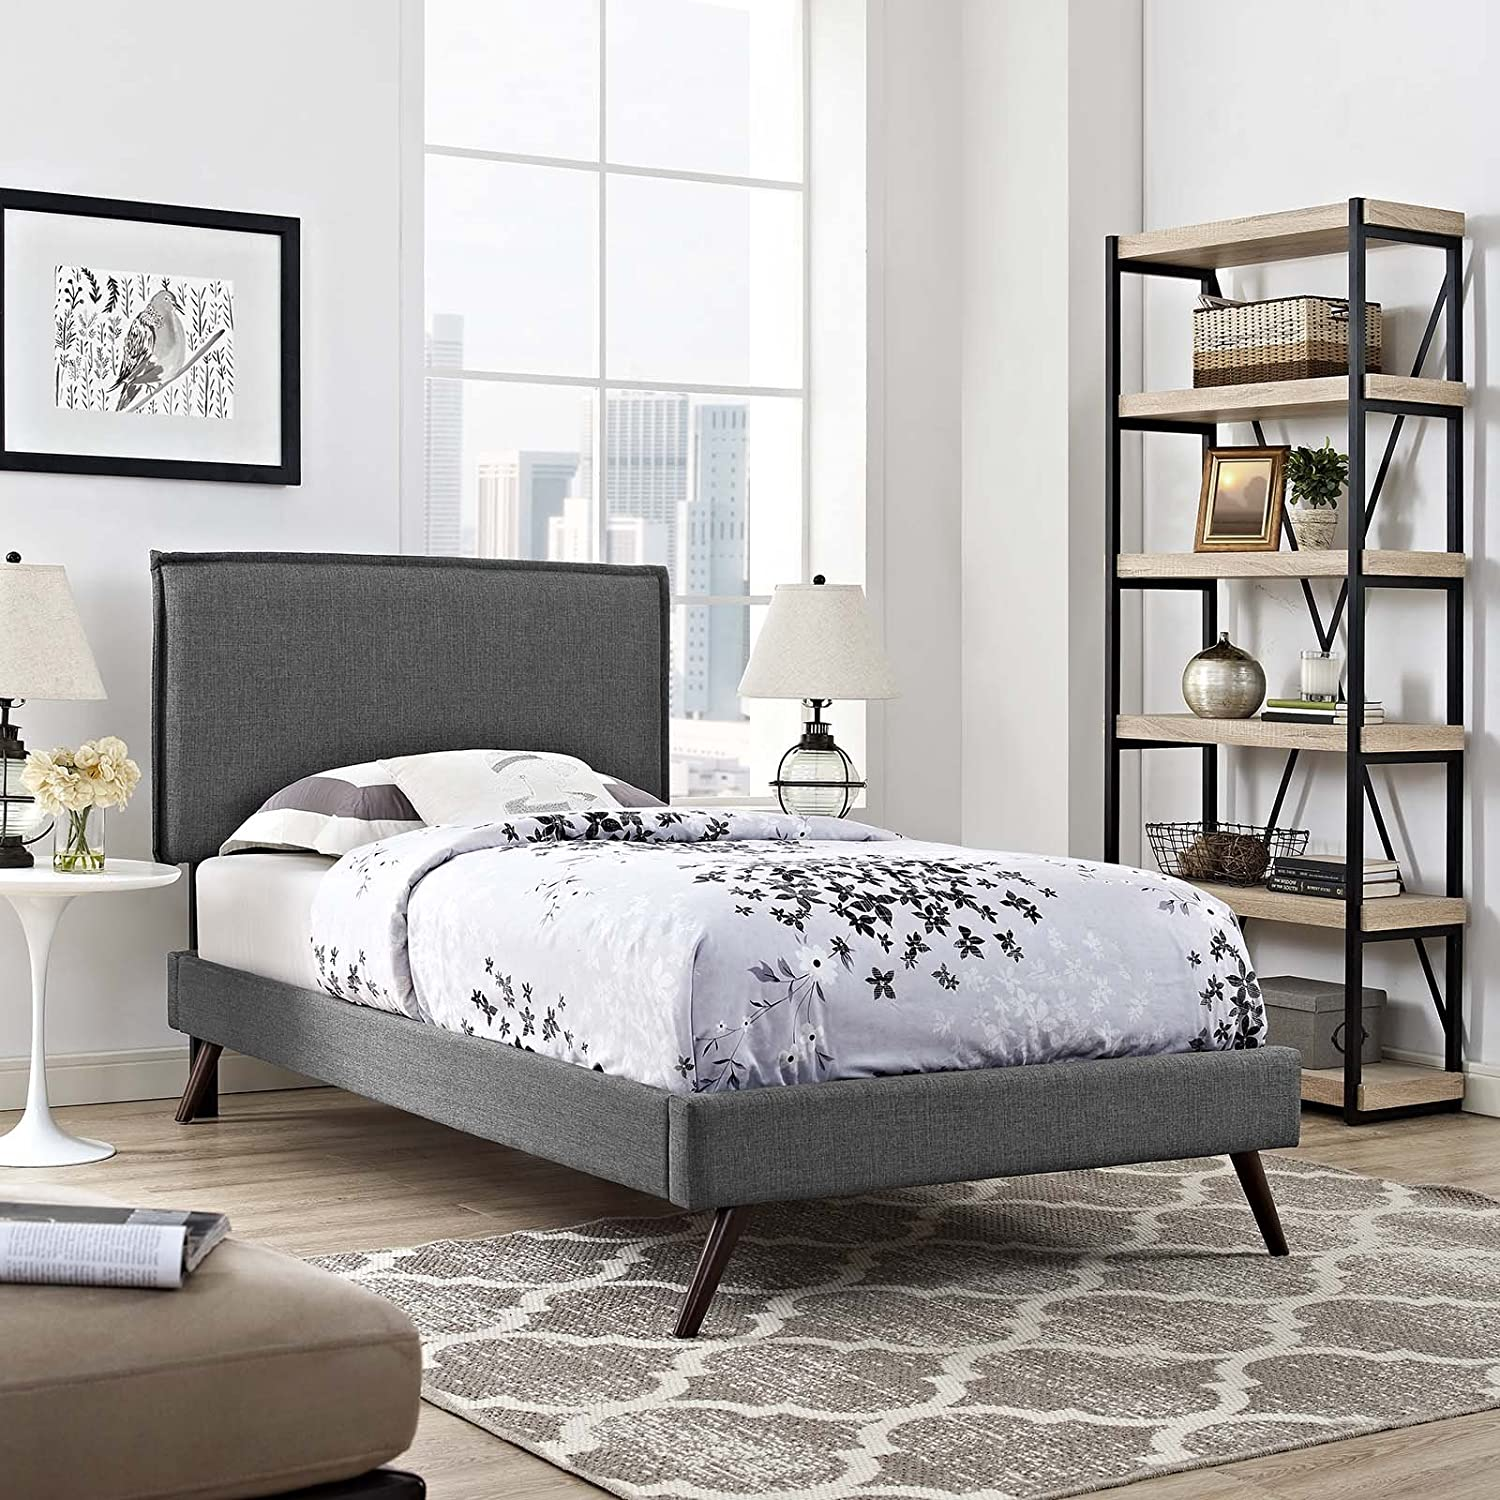 Modway Amaris Upholstered Twin Platform Bed Frame in Gray With Splayed Legs